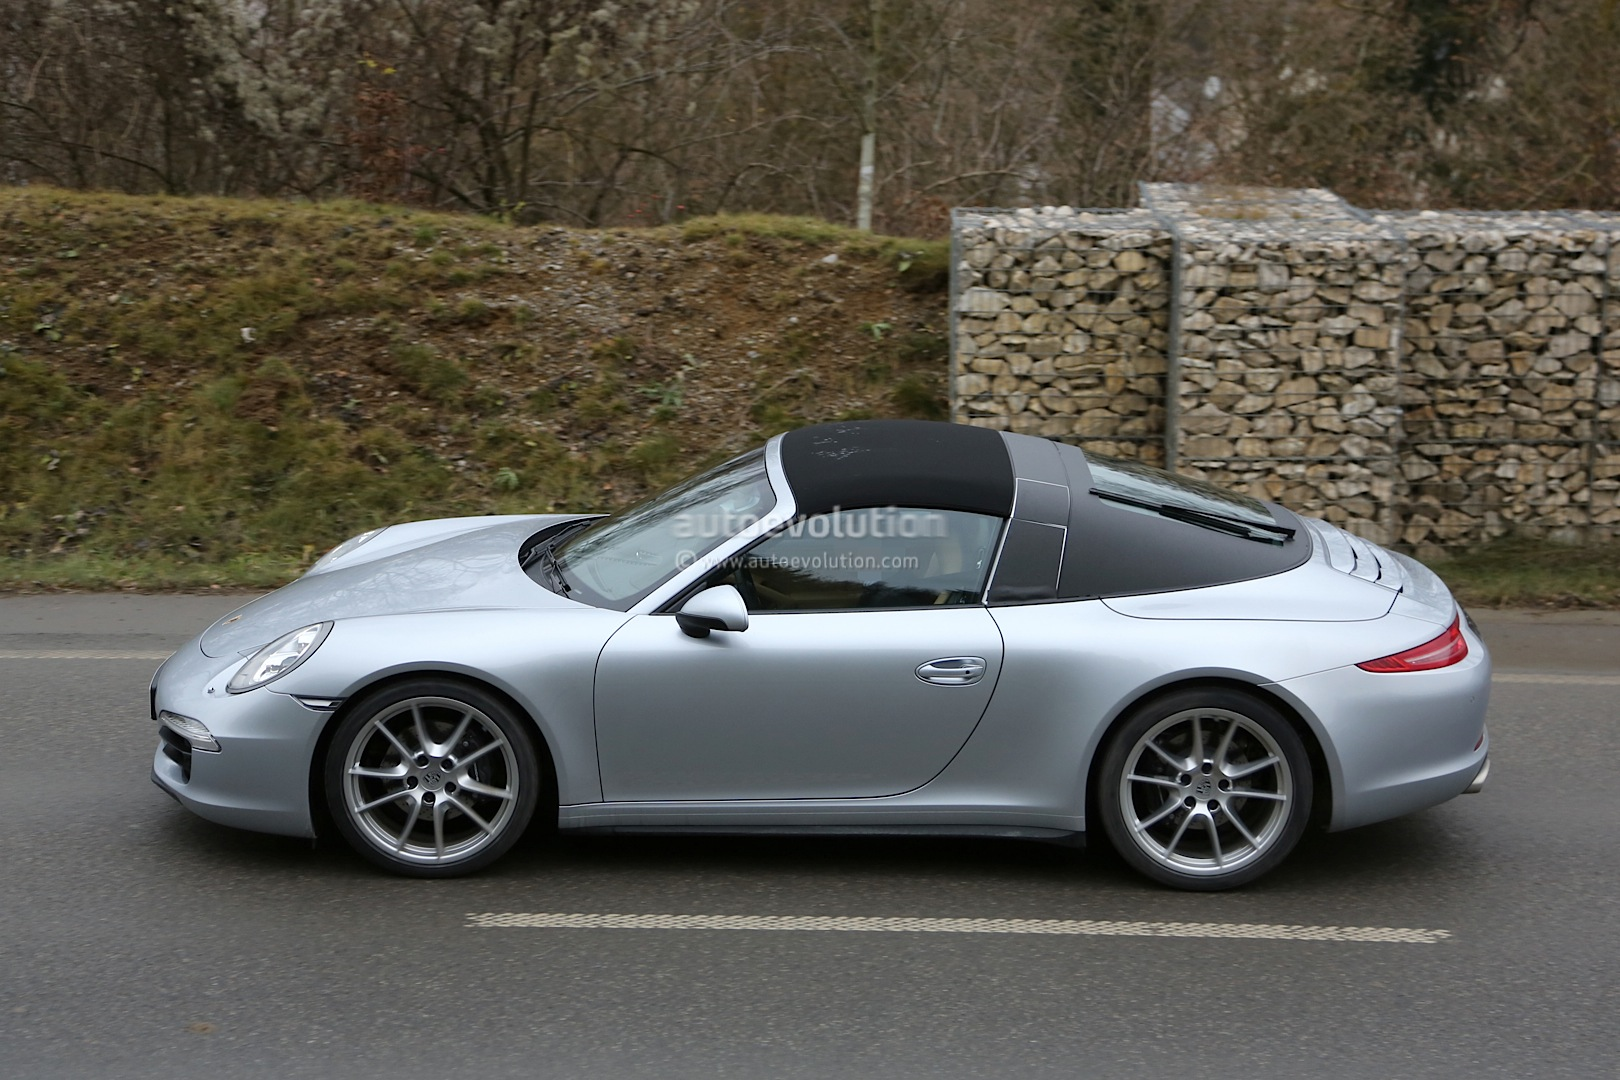 Spyshots New Porsche 911 Targa Almost Undisguised